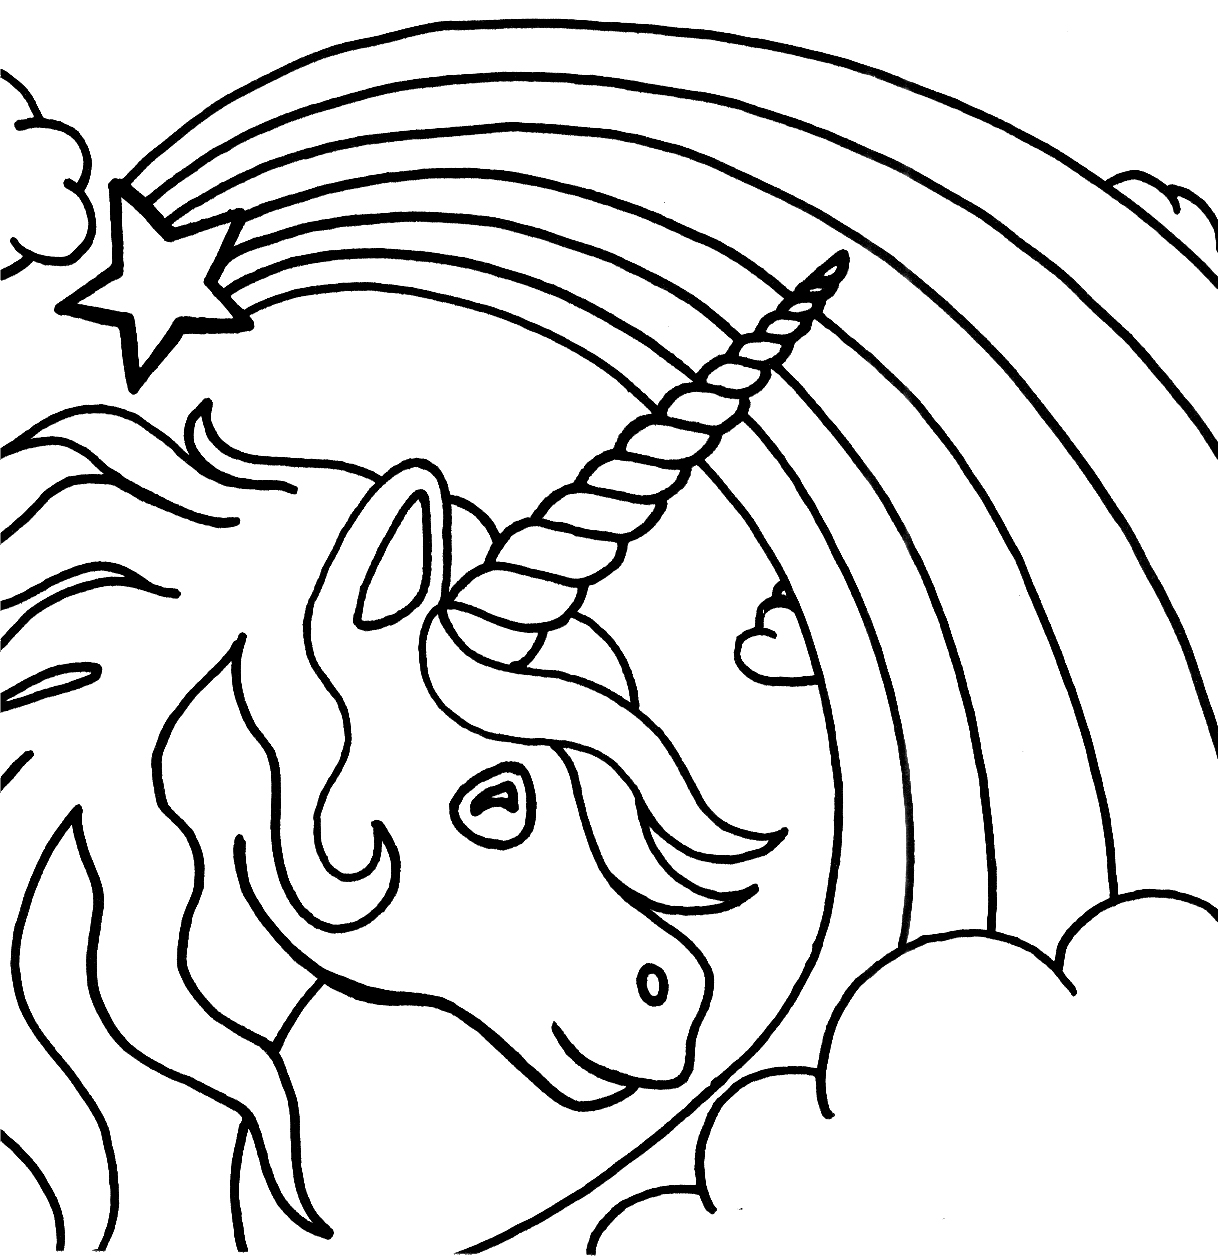 1218x1258 Unicorn Fairy Tales Coloring Pages Printable Art Sheets